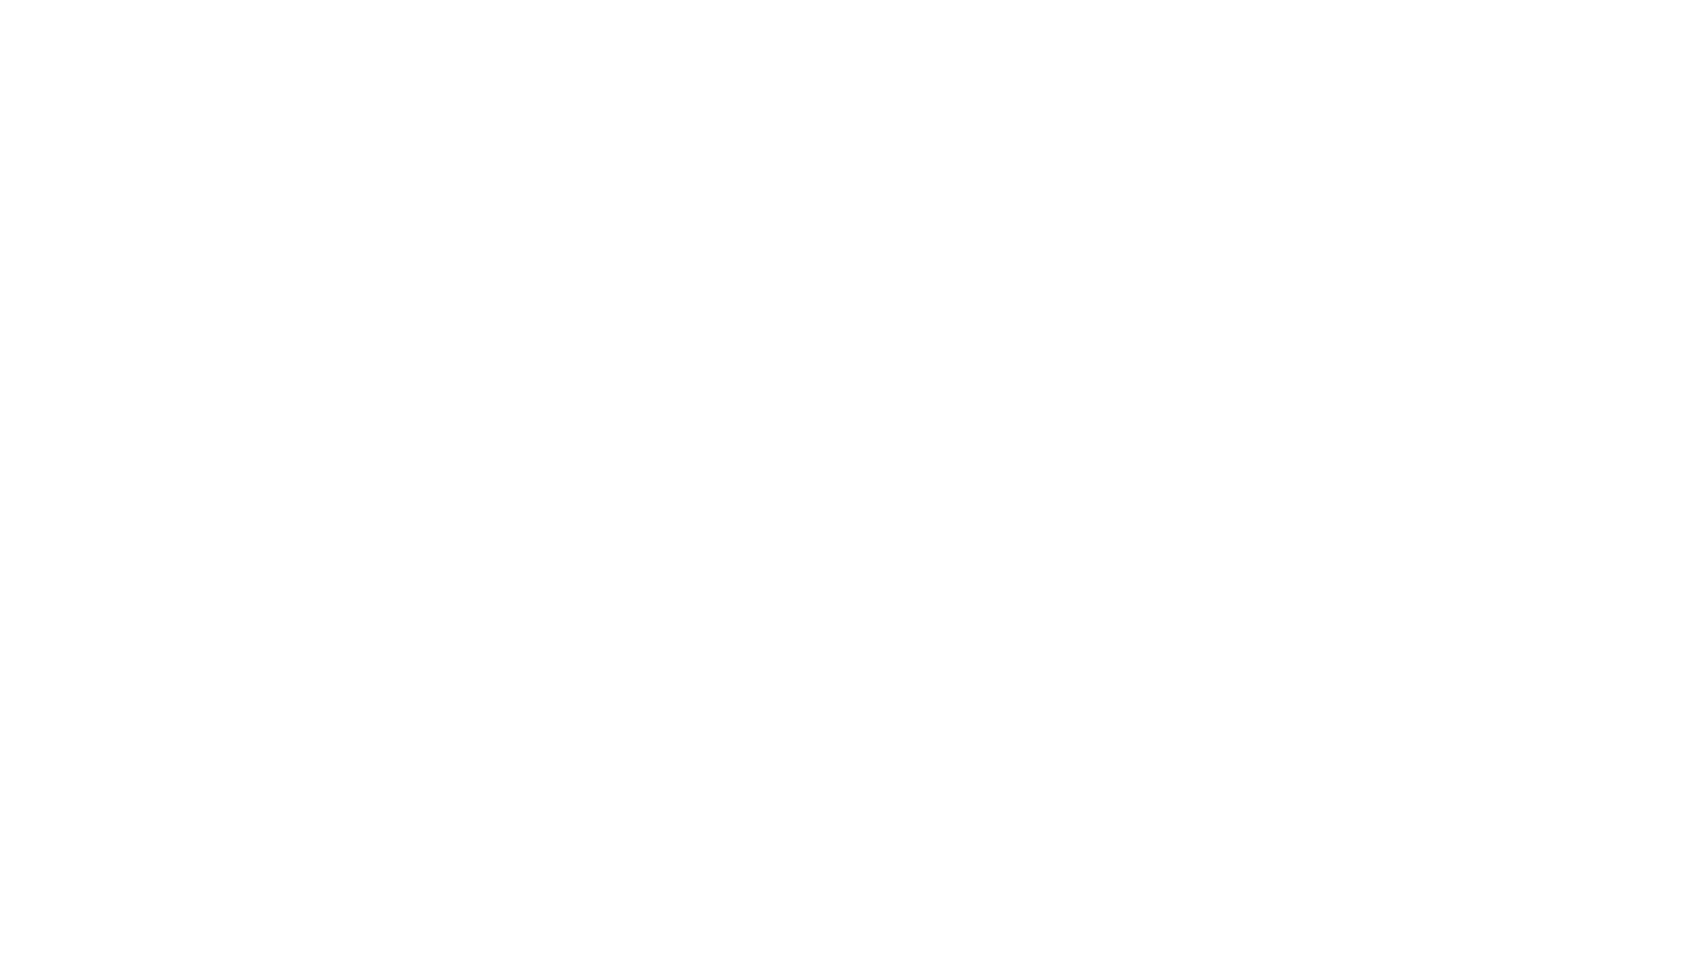 For Change